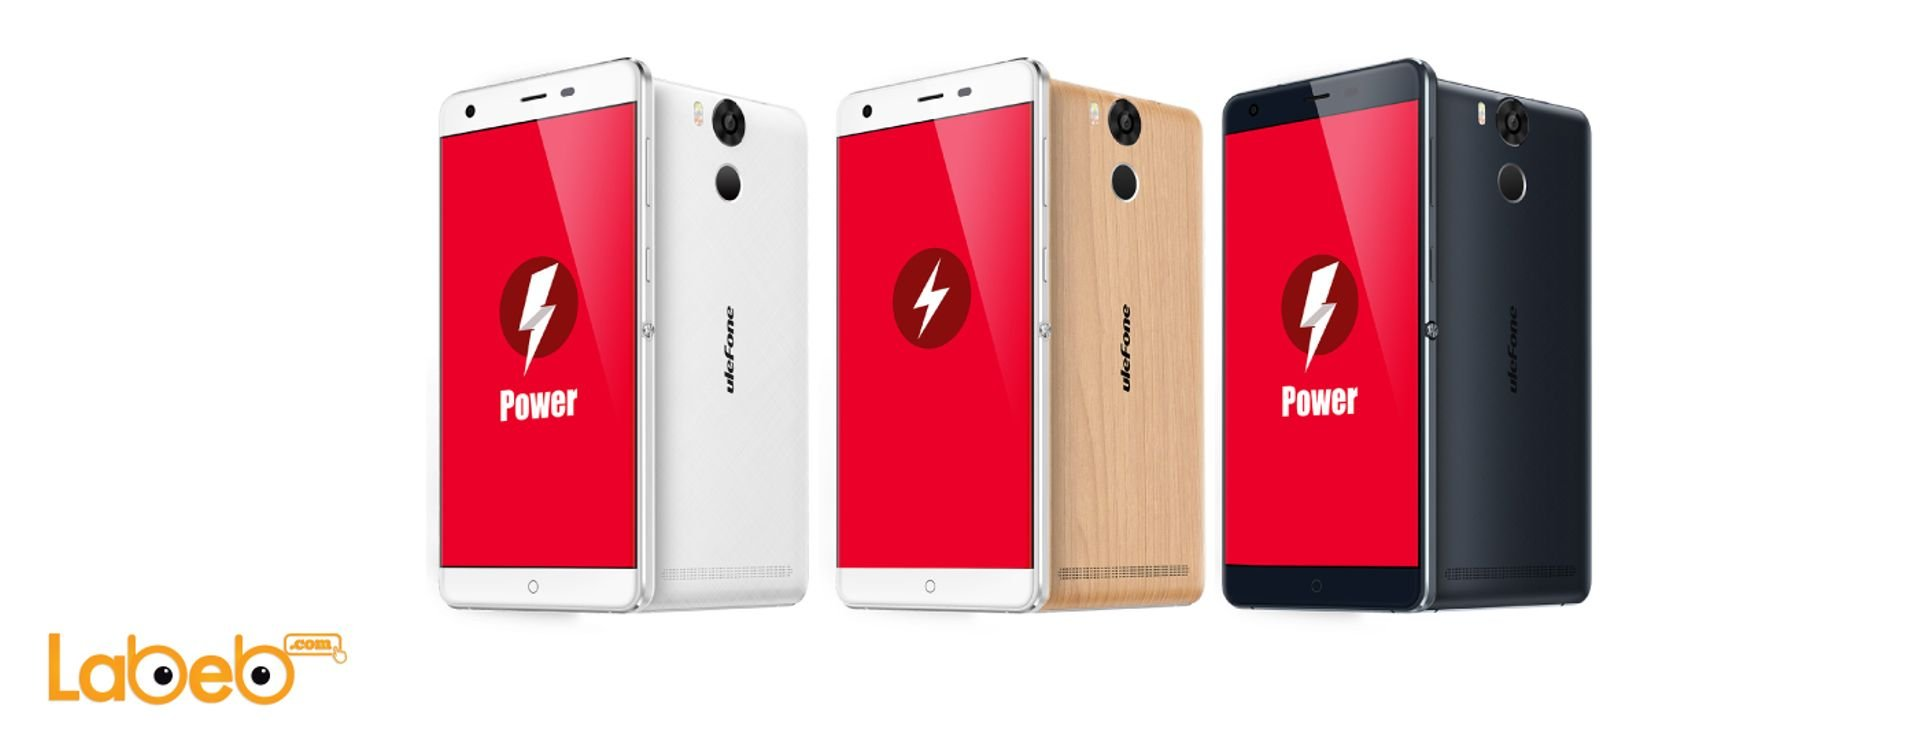 Ulefone Power with a 6050 mAh Battery, Lasting more than 75 Days on Standby.